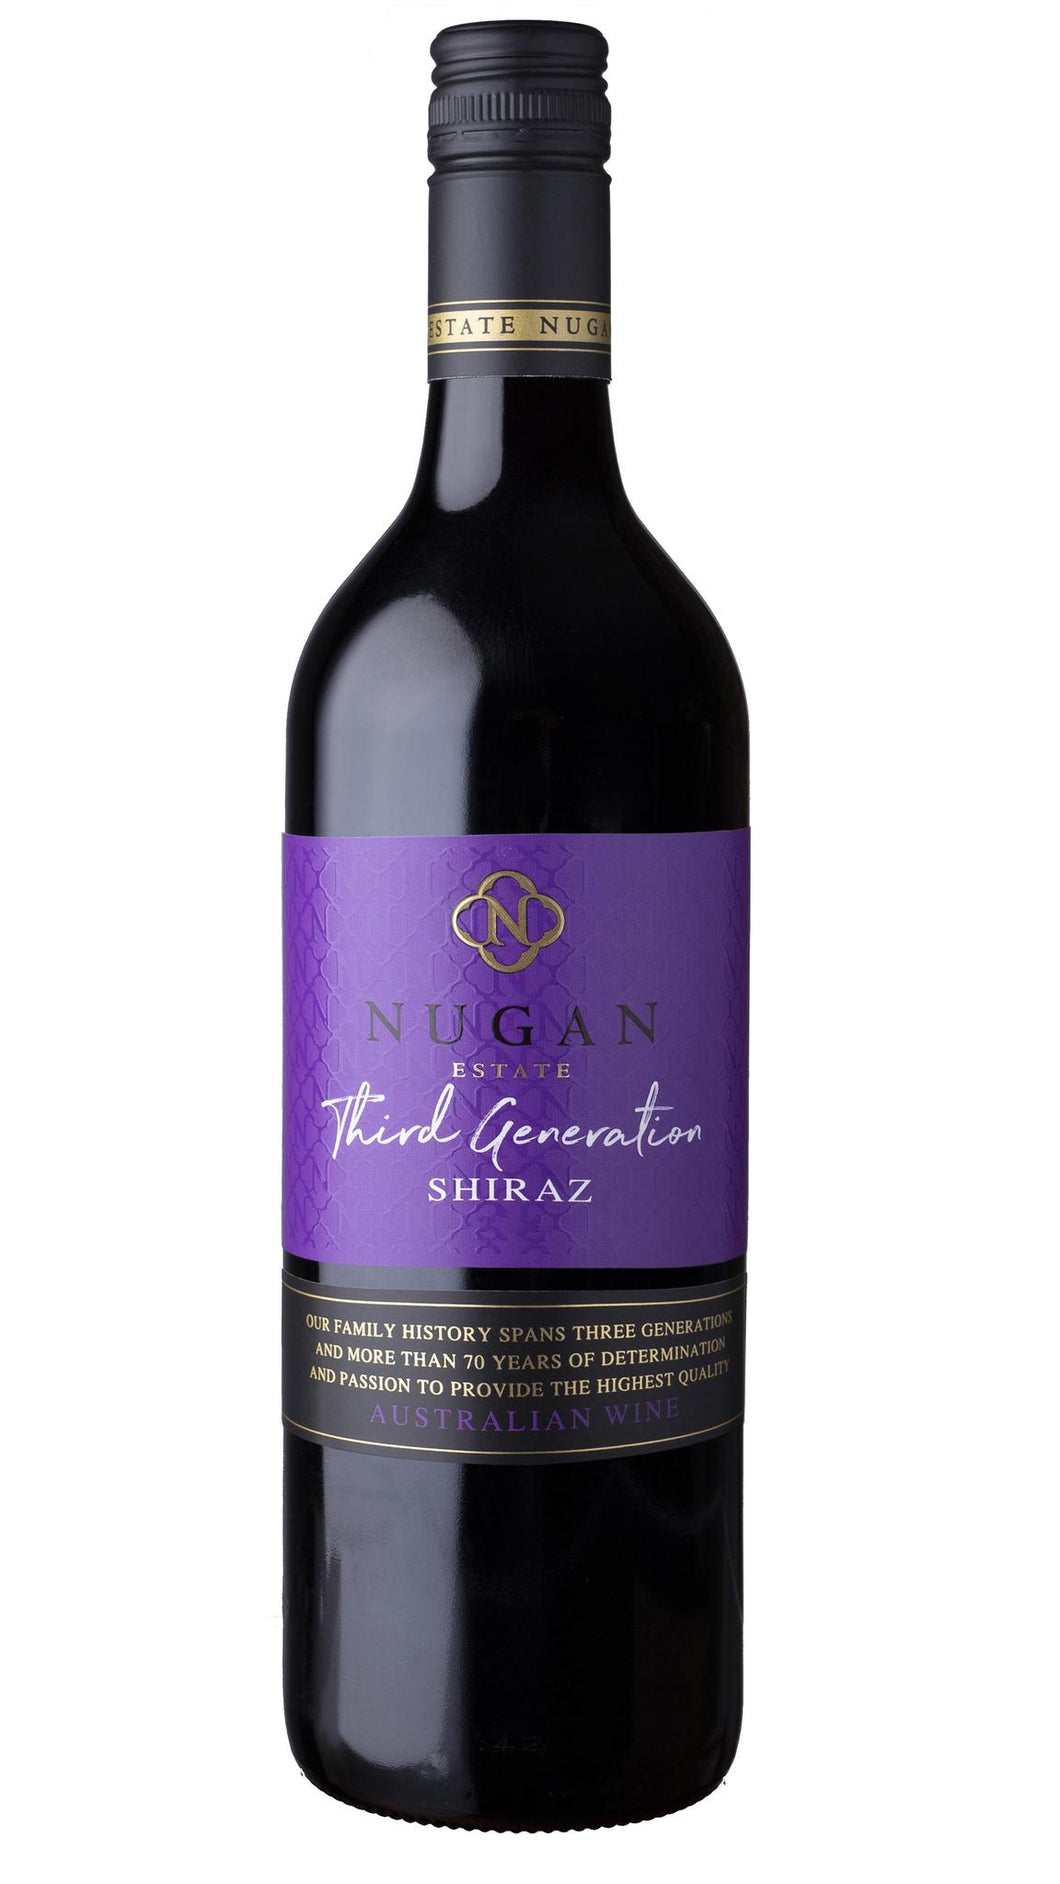 Nugan Family Estates 'Third Generation' Shiraz - 750 ml bottle